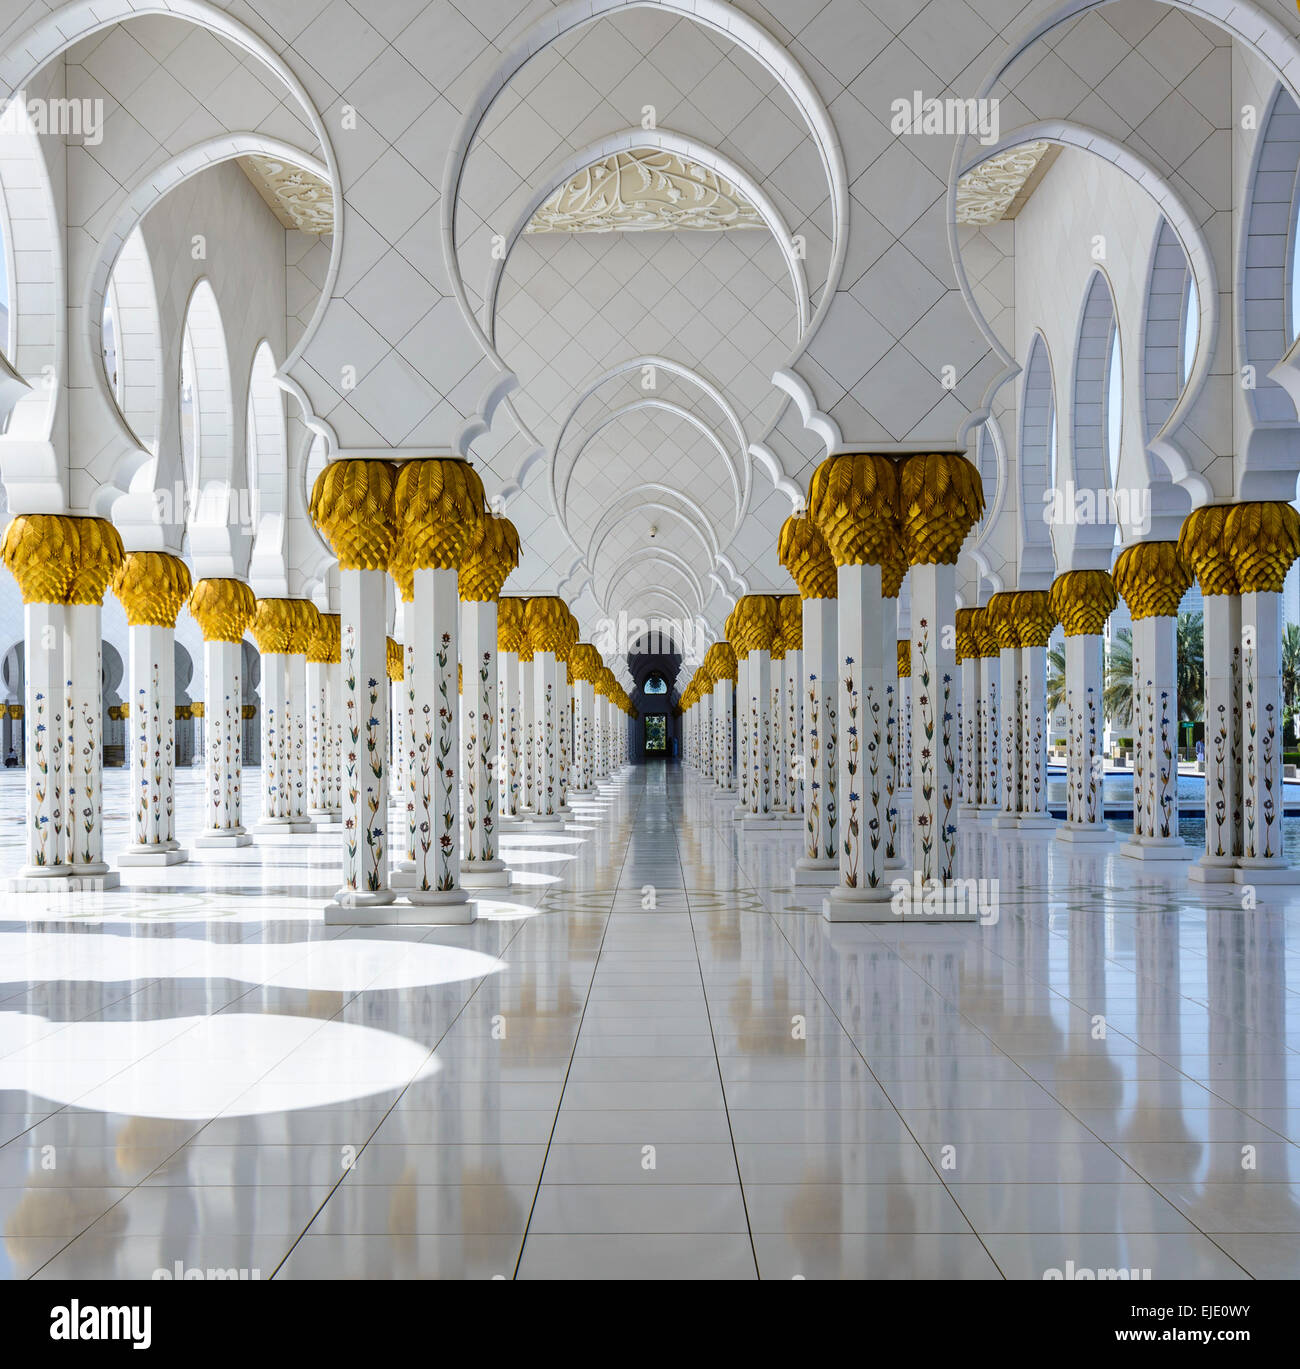 Columns of the Grand Mosque in Abu Dhabi, UAE - Stock Image